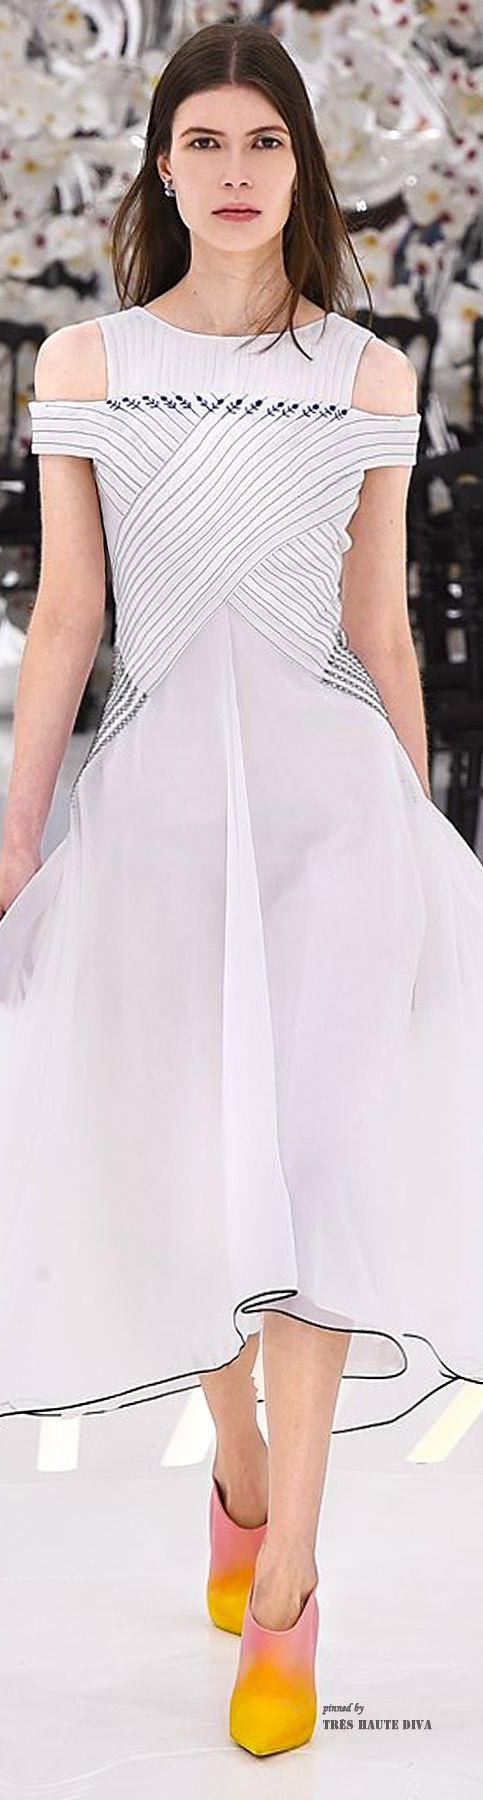 Christian Dior Haute Couture Autumn/Winter 2014-2015